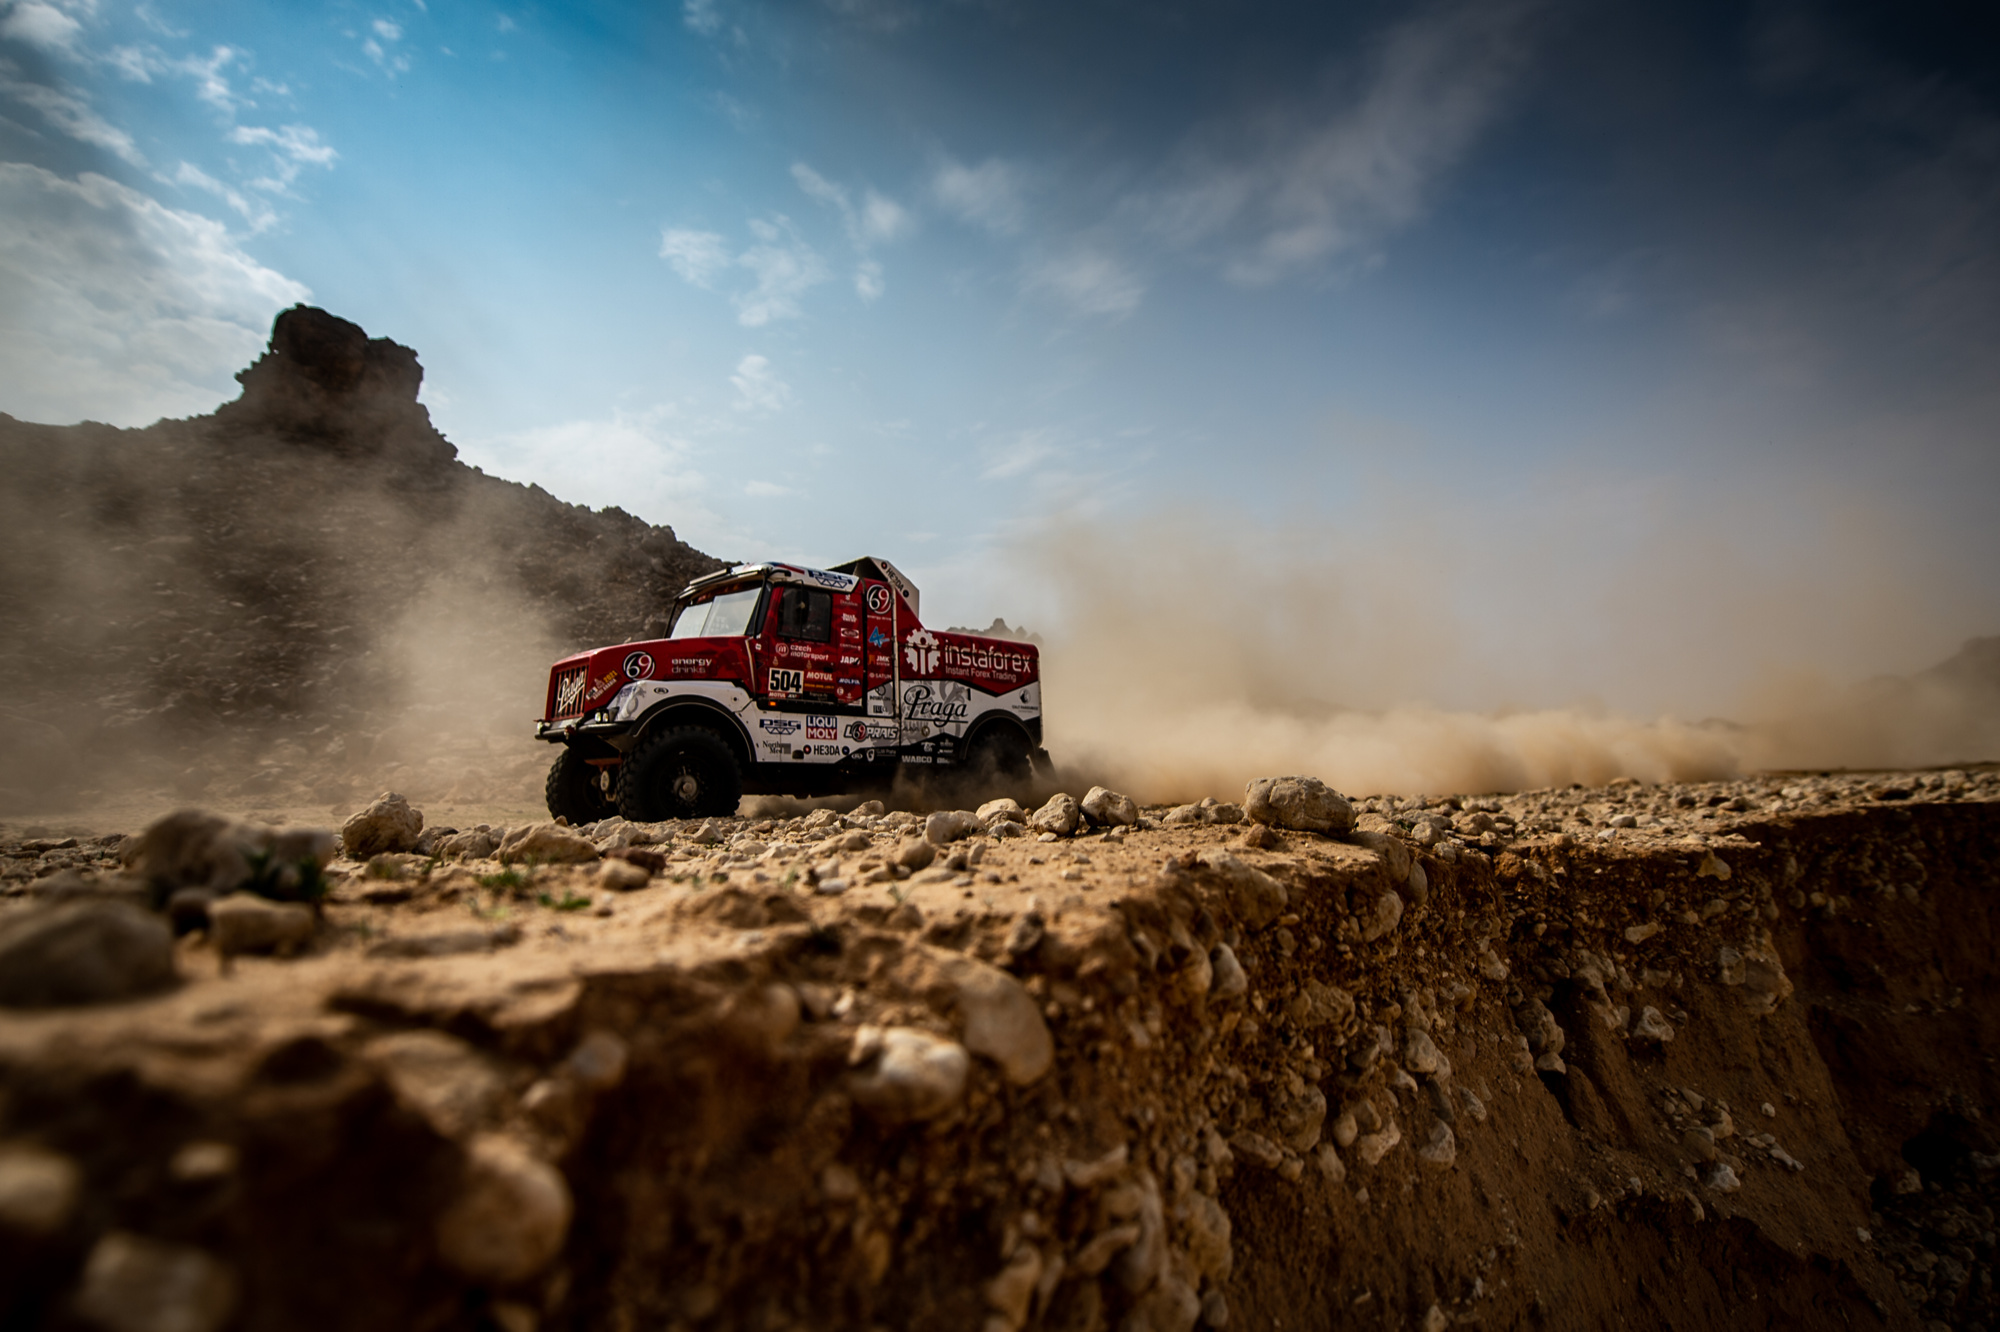 Dakar 2021: After a storming drive, Loprais is close to top 3